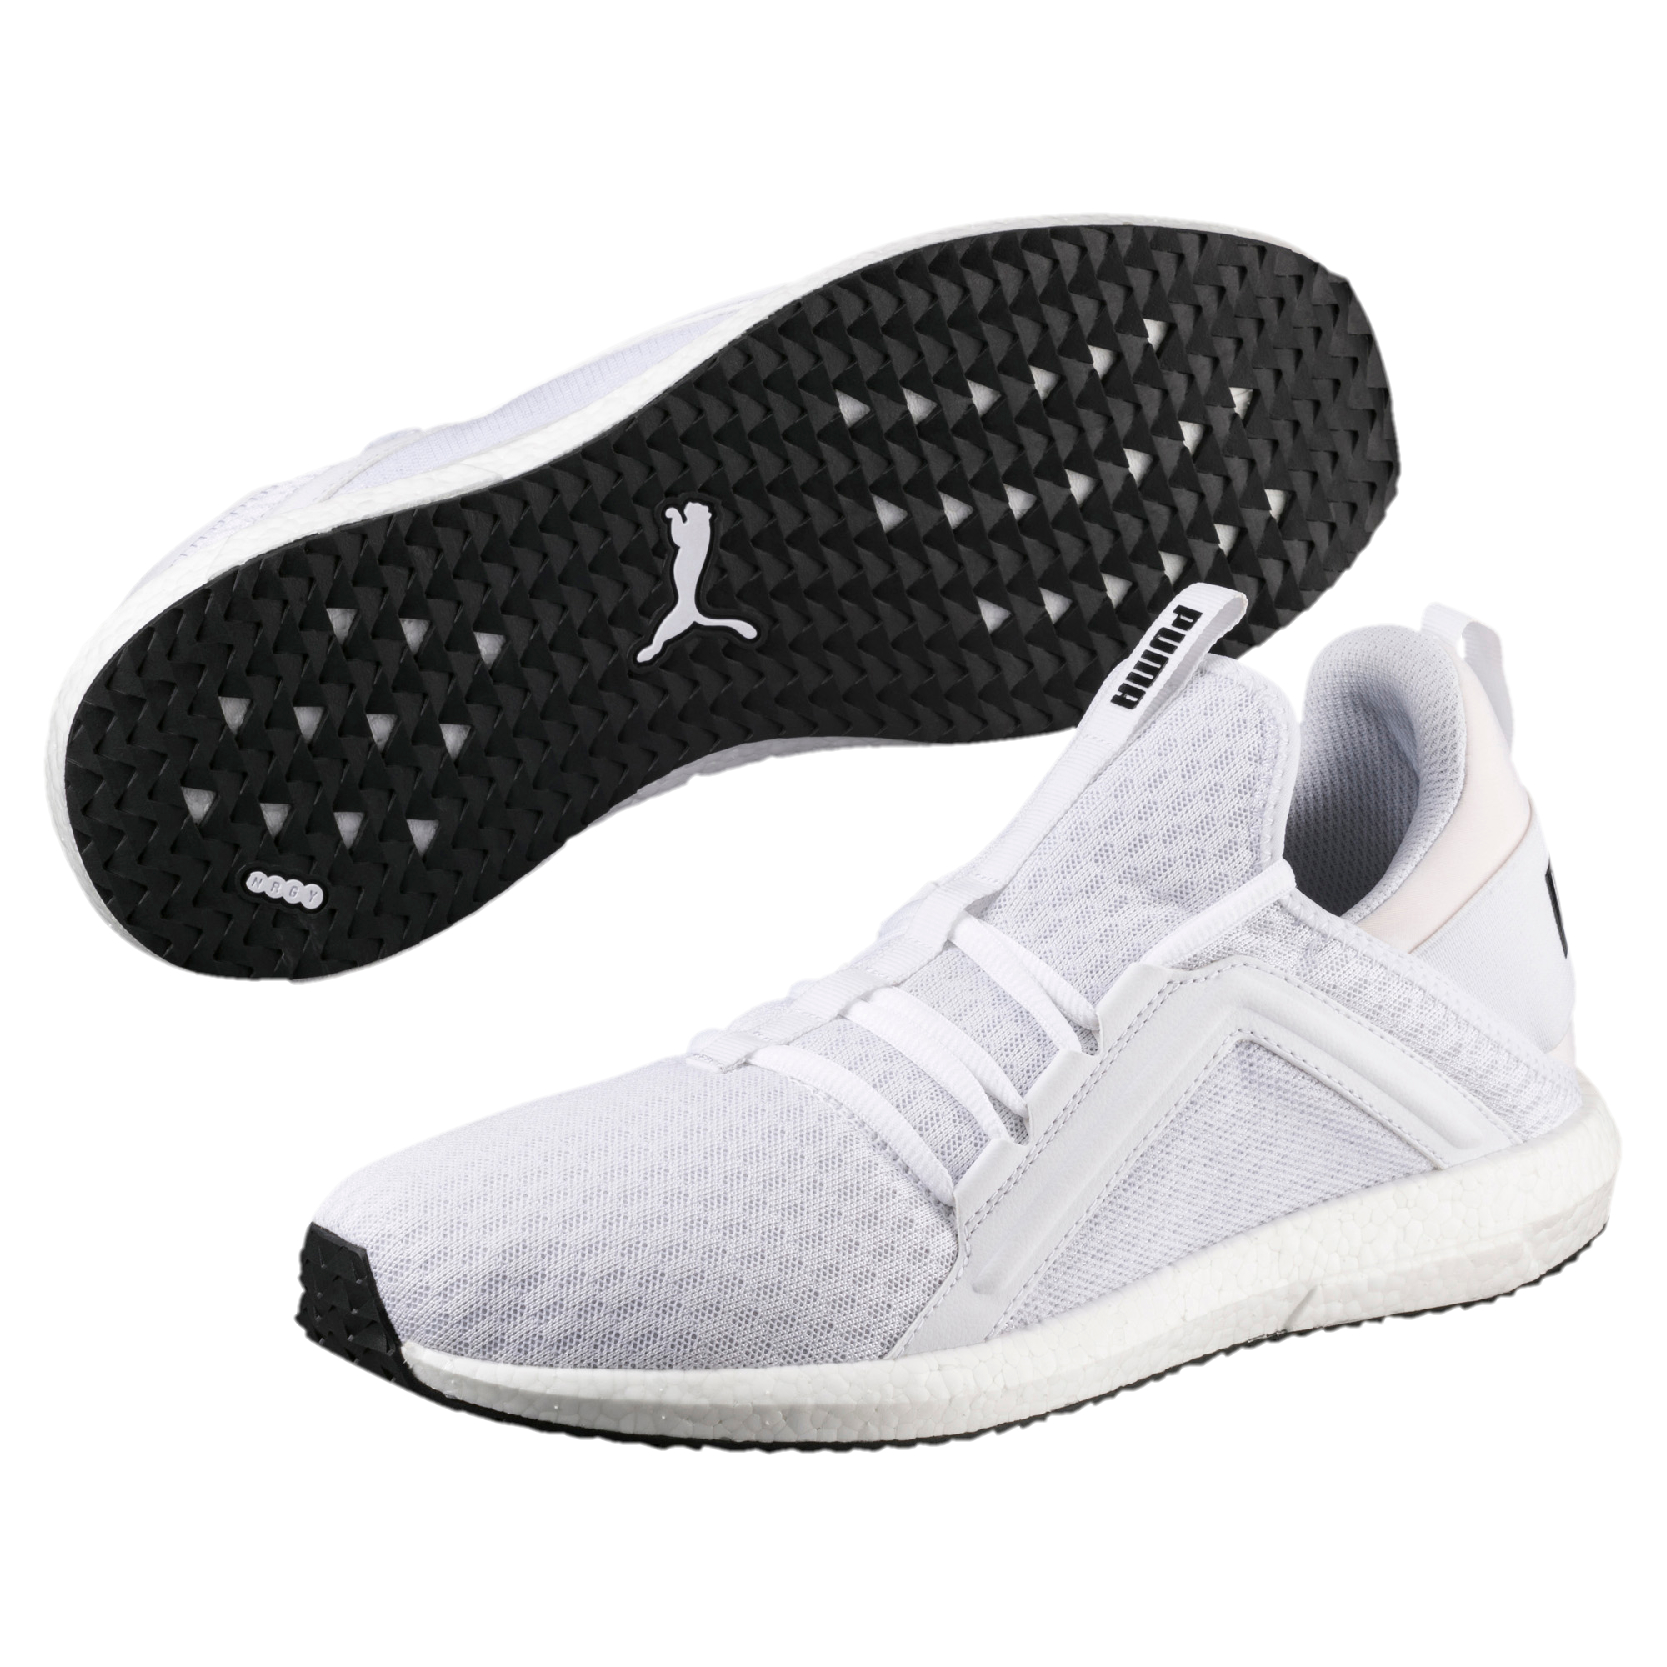 Chaussures de running | Puma | Mega NRGY Knit Shoes | Wiggle